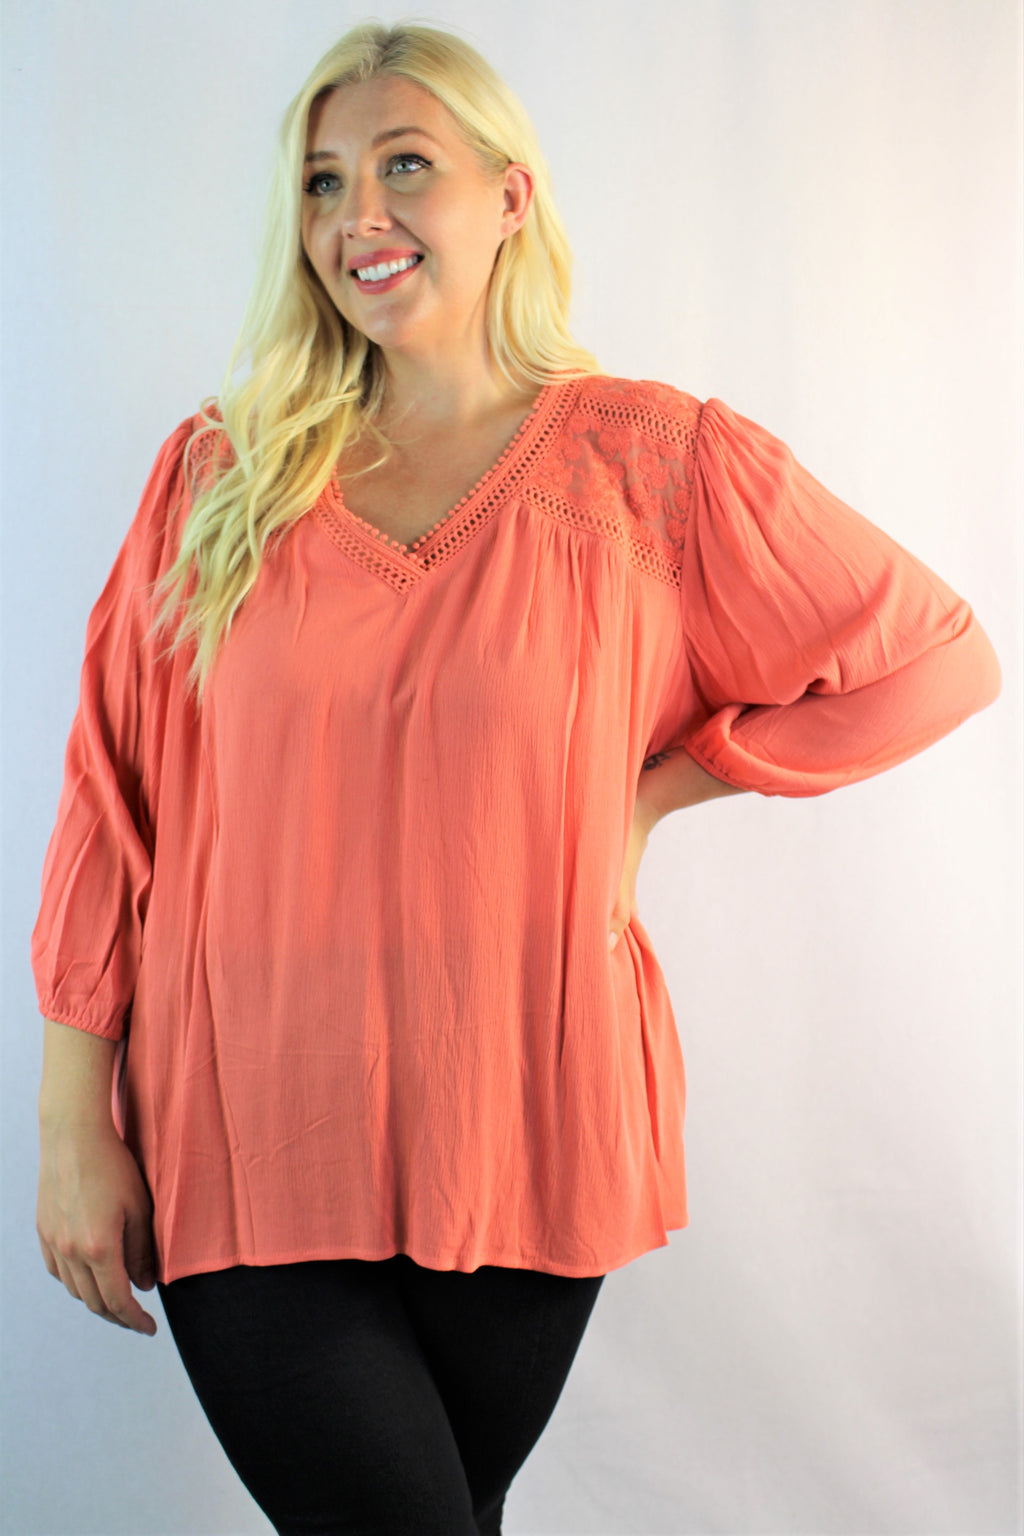 Women's Plus Size 3/4th Sleeve Blouse with Lace Detail